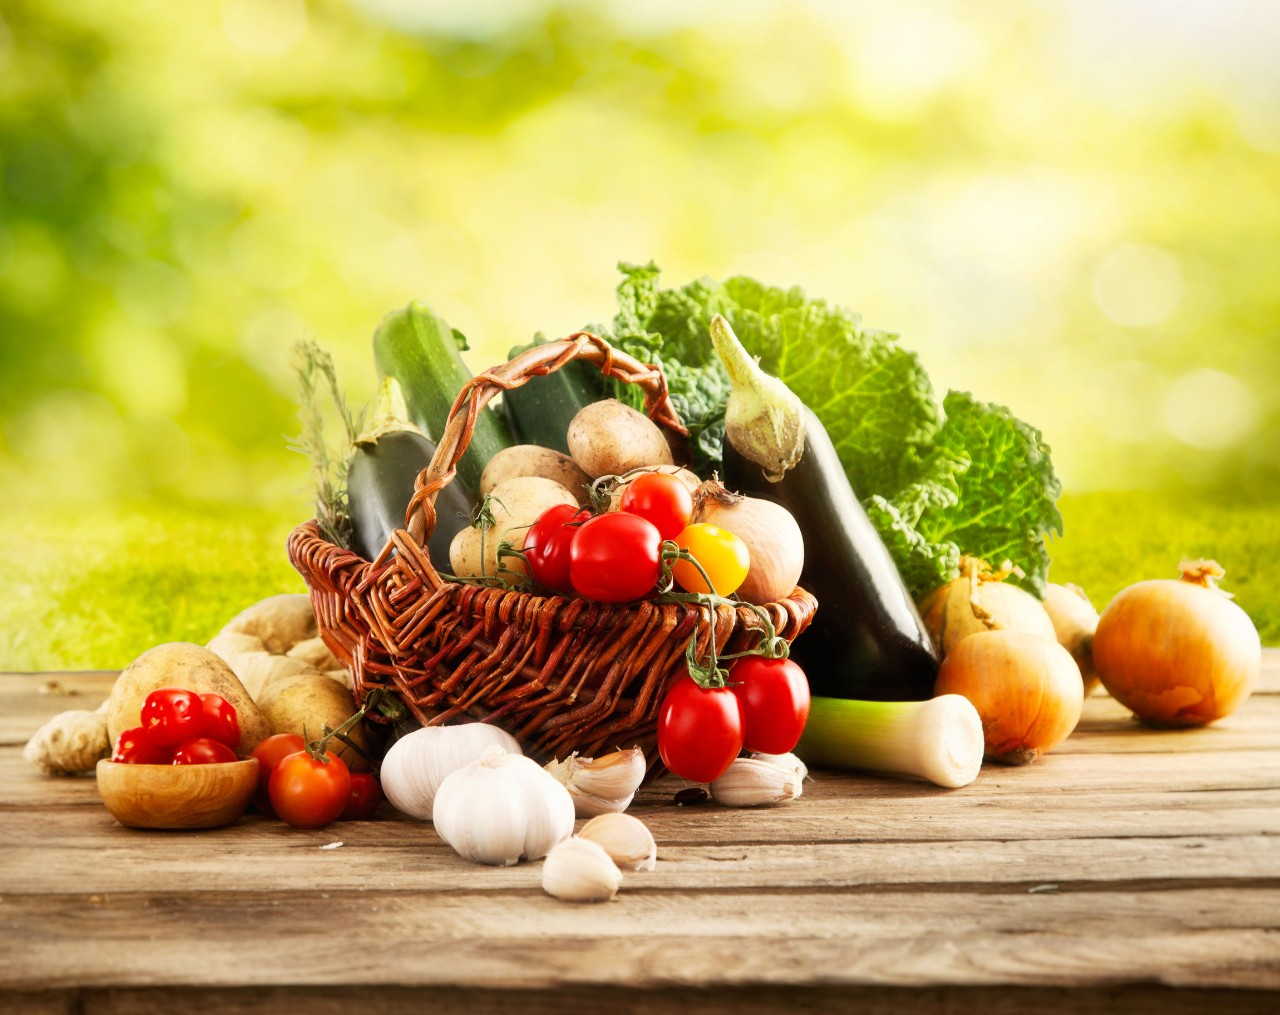 ABBV0292-Vegetables-on-Wood-123RF-40888351_l